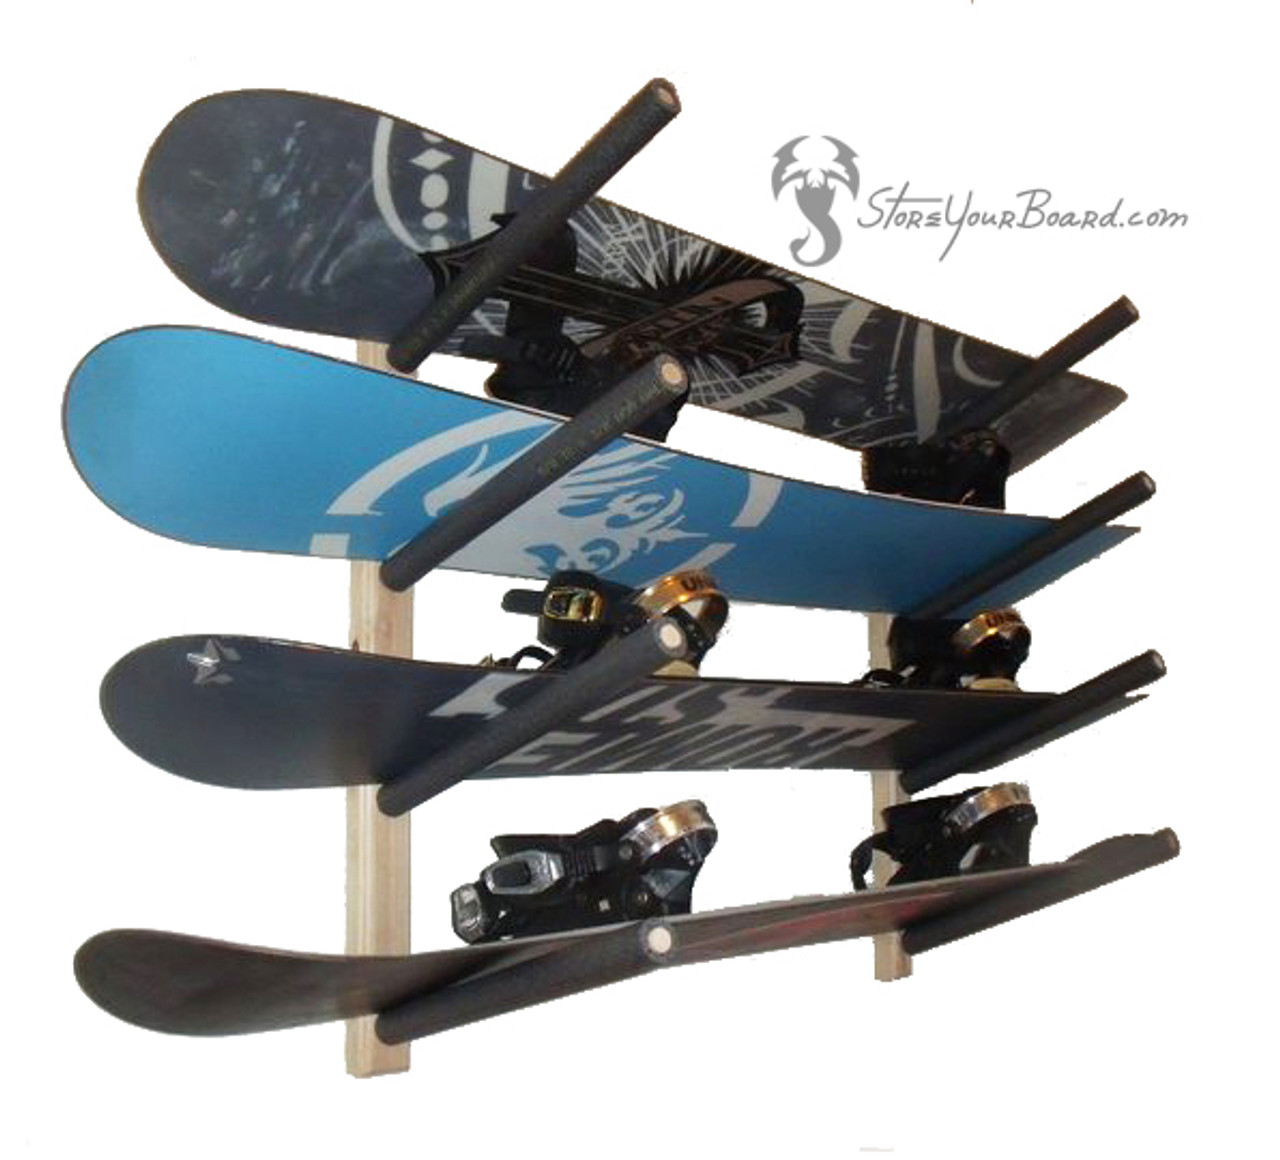 Snowboard Garage Rack 4 Boards Storeyourboard Com